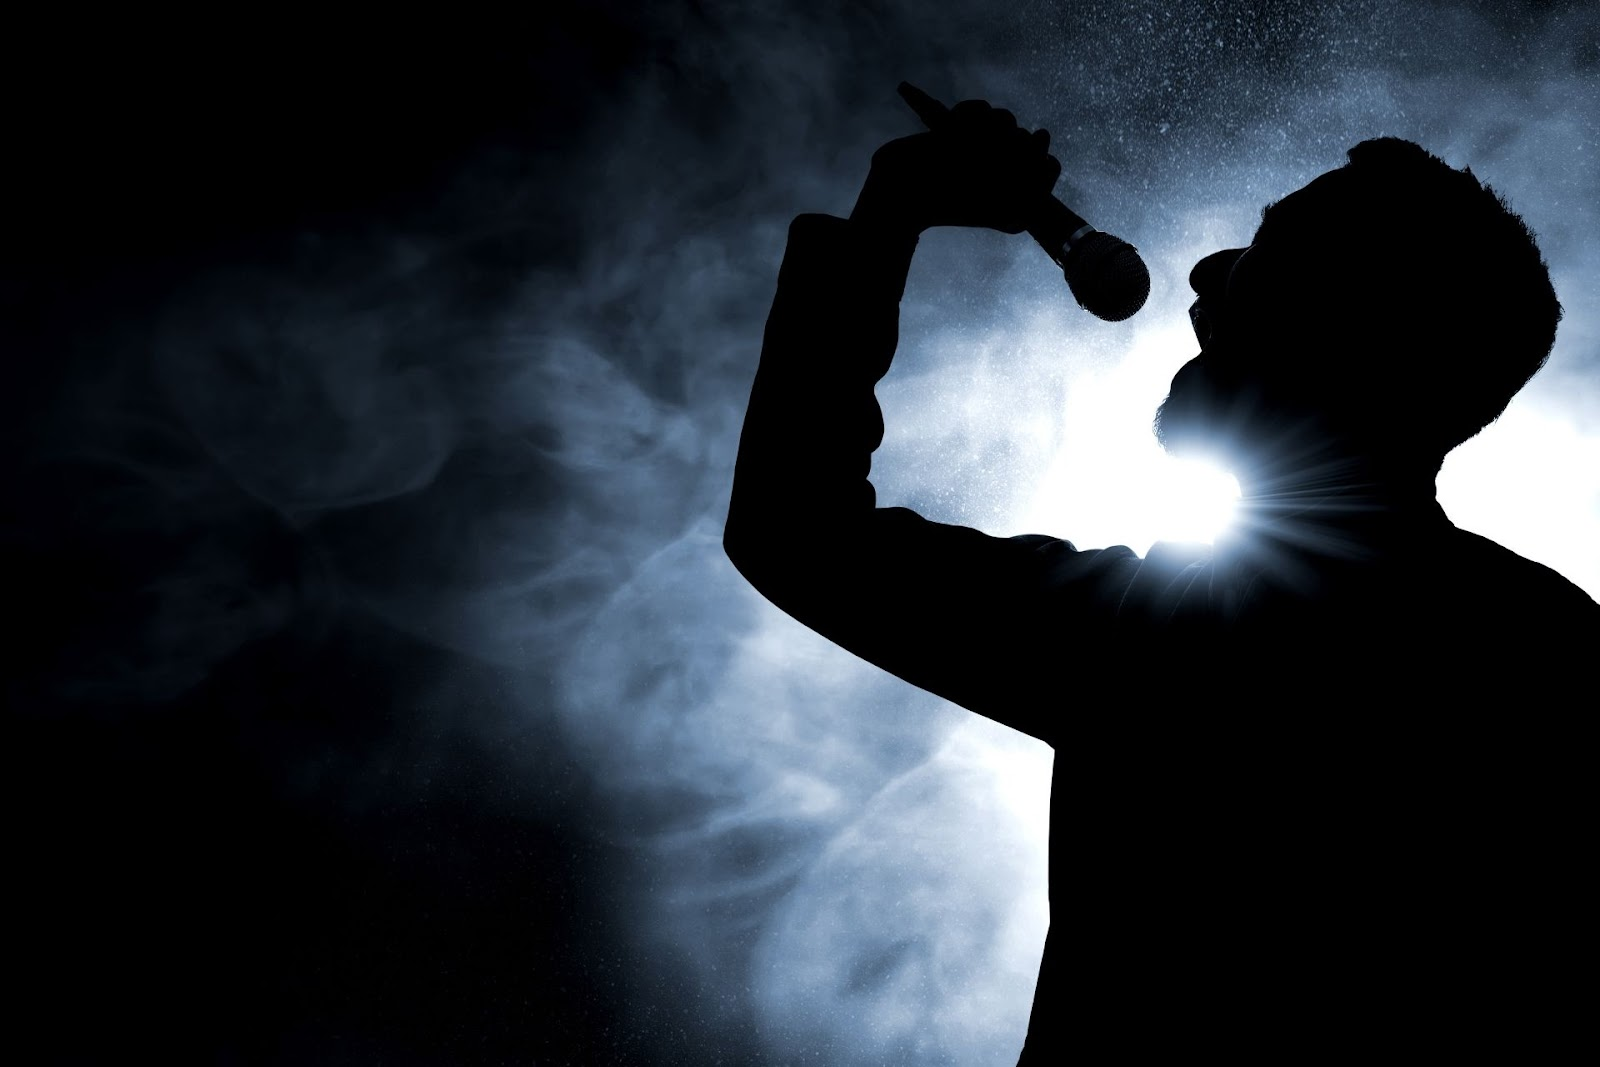 A silhouette of a man singing into a microphone